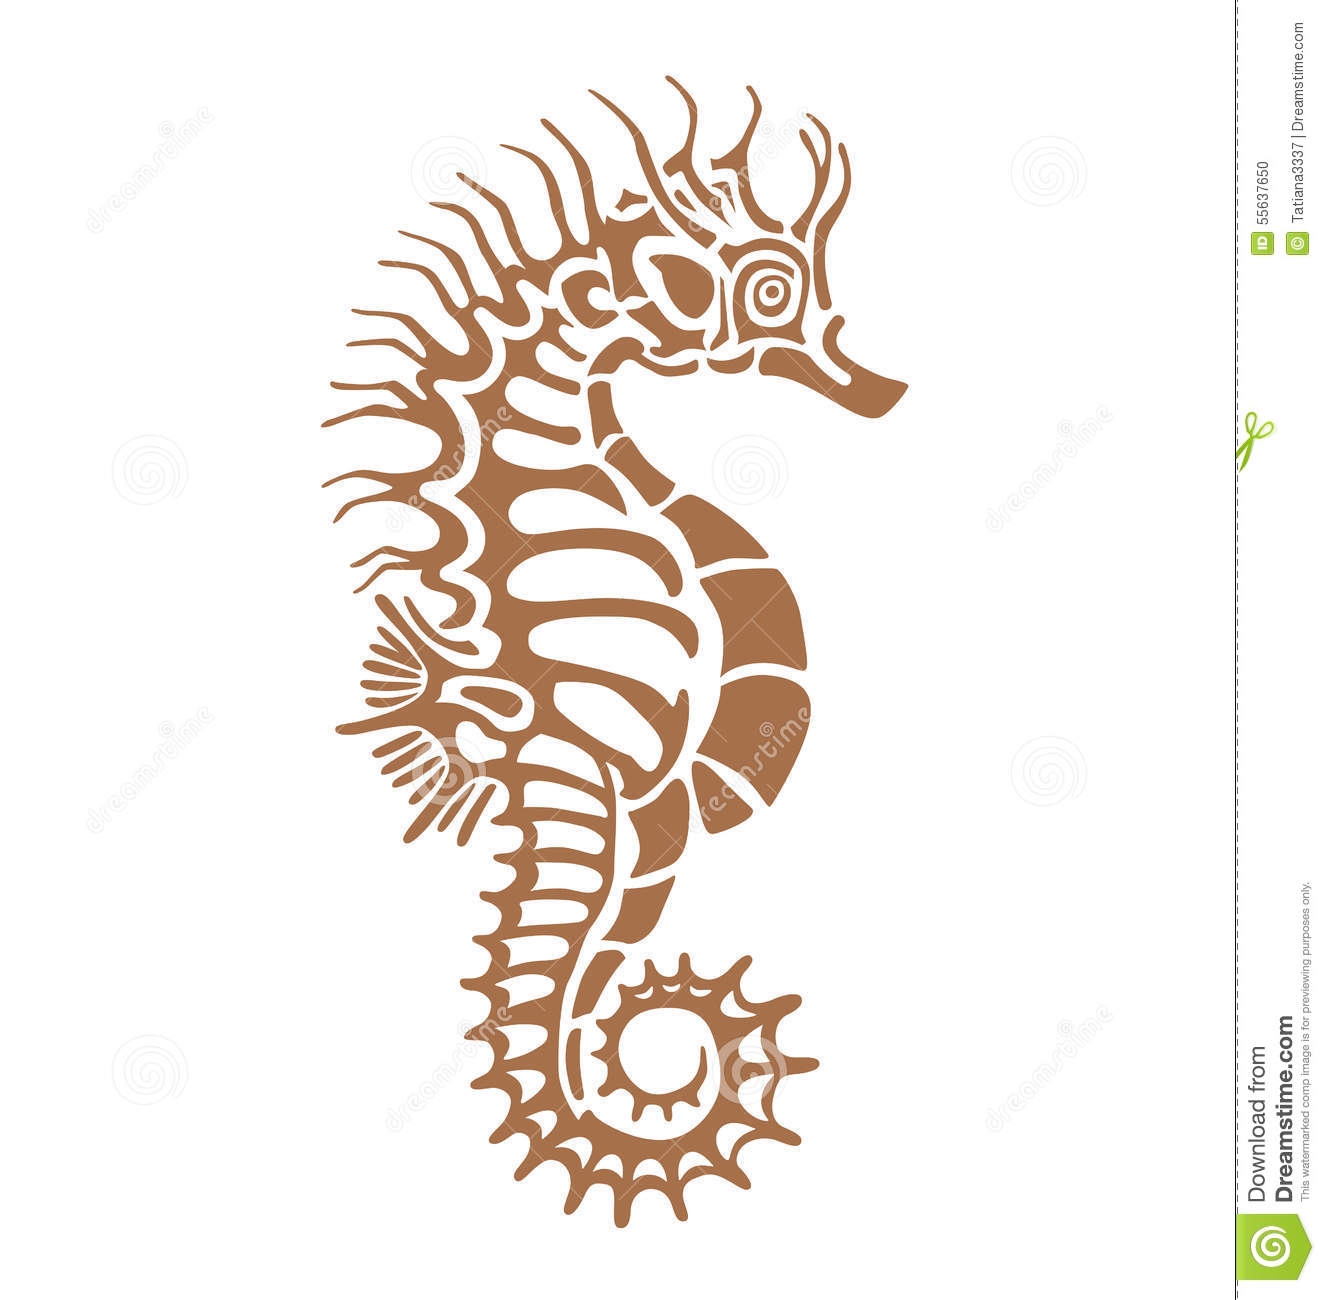 Stock Illustration Sea Horse Seahorse Made One Color Under Stencil Can Decorate Your Plaster Imprint Antiquity Image55637650 on Stock Illustration Fish Silhouette